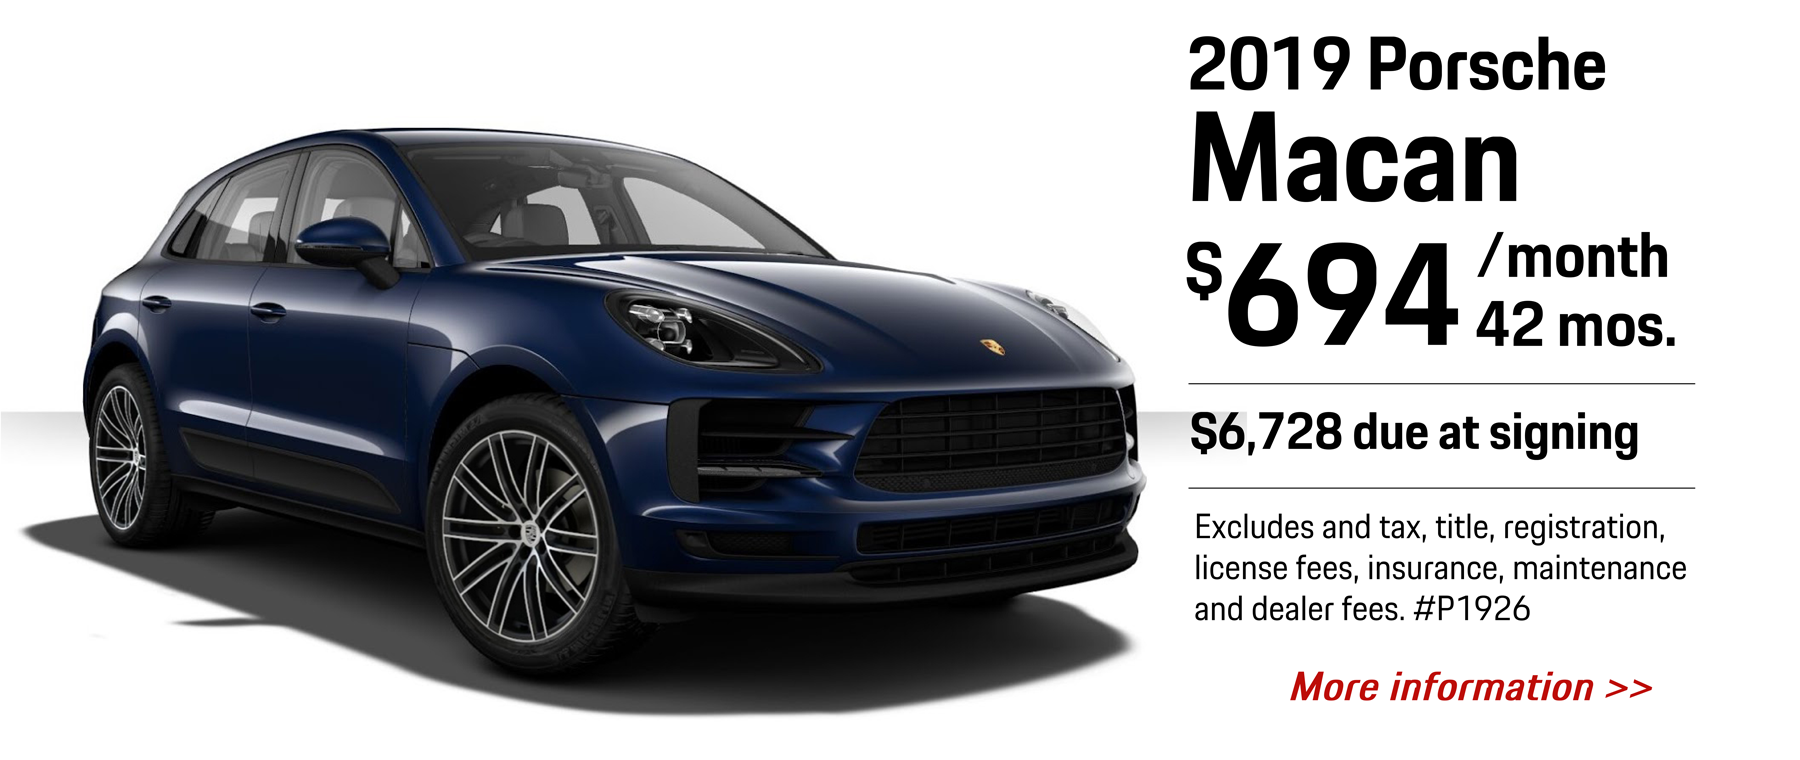 Used Car Dealerships In Lancaster Pa >> Autohaus Lancaster Porsche Porsche Dealer In Lancaster Pa